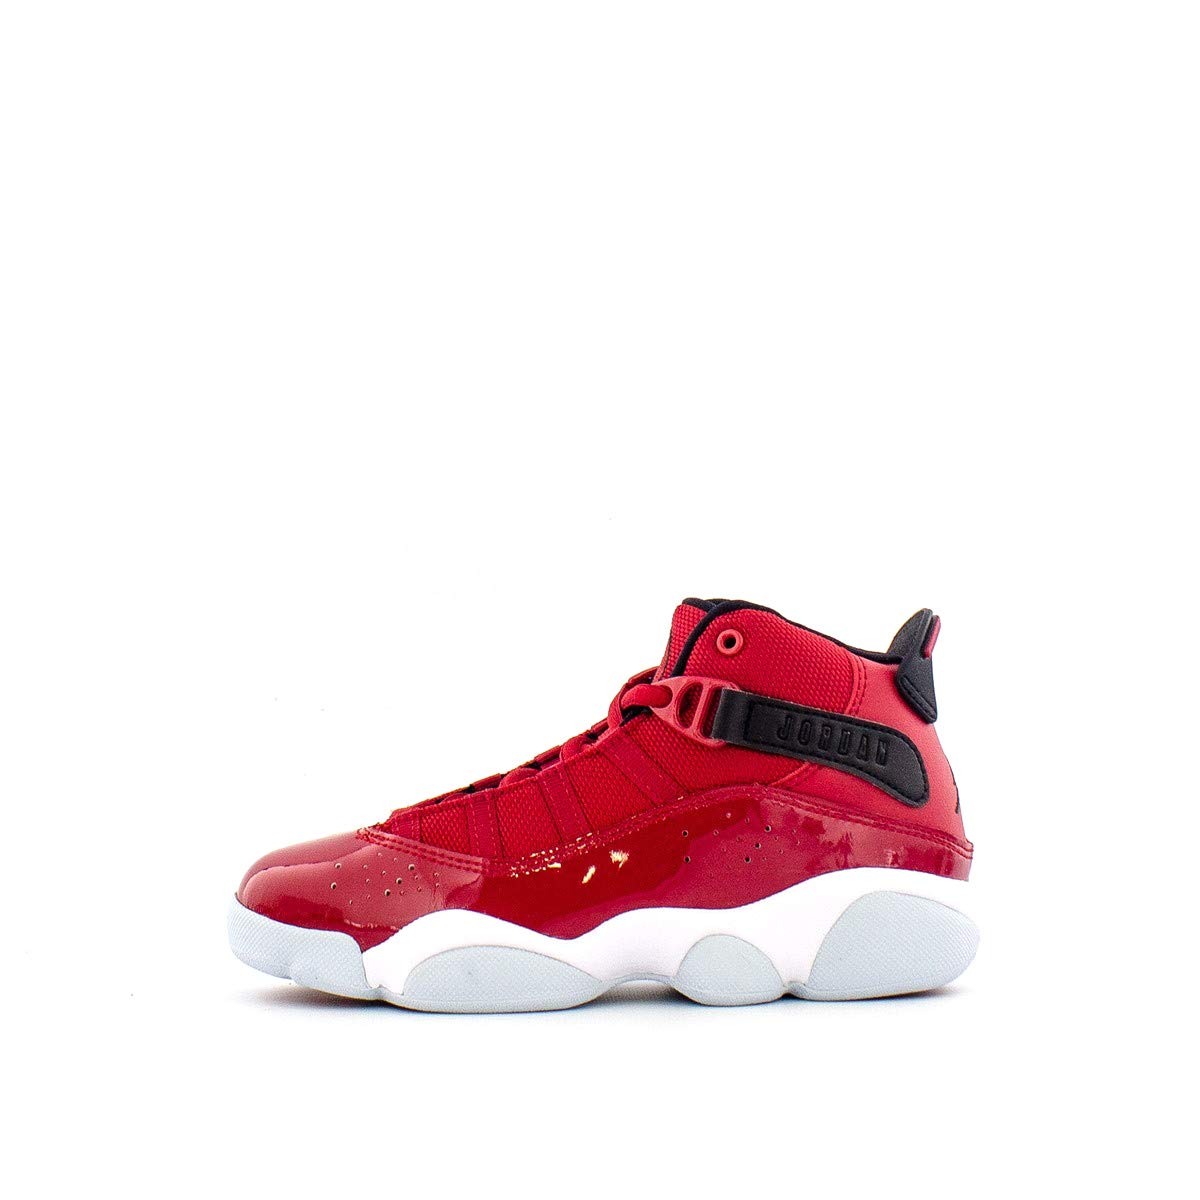 Jordan 6 Rings Gym Red/Black-White (PS) (3 M US Little Kid) by Jordan (Image #4)